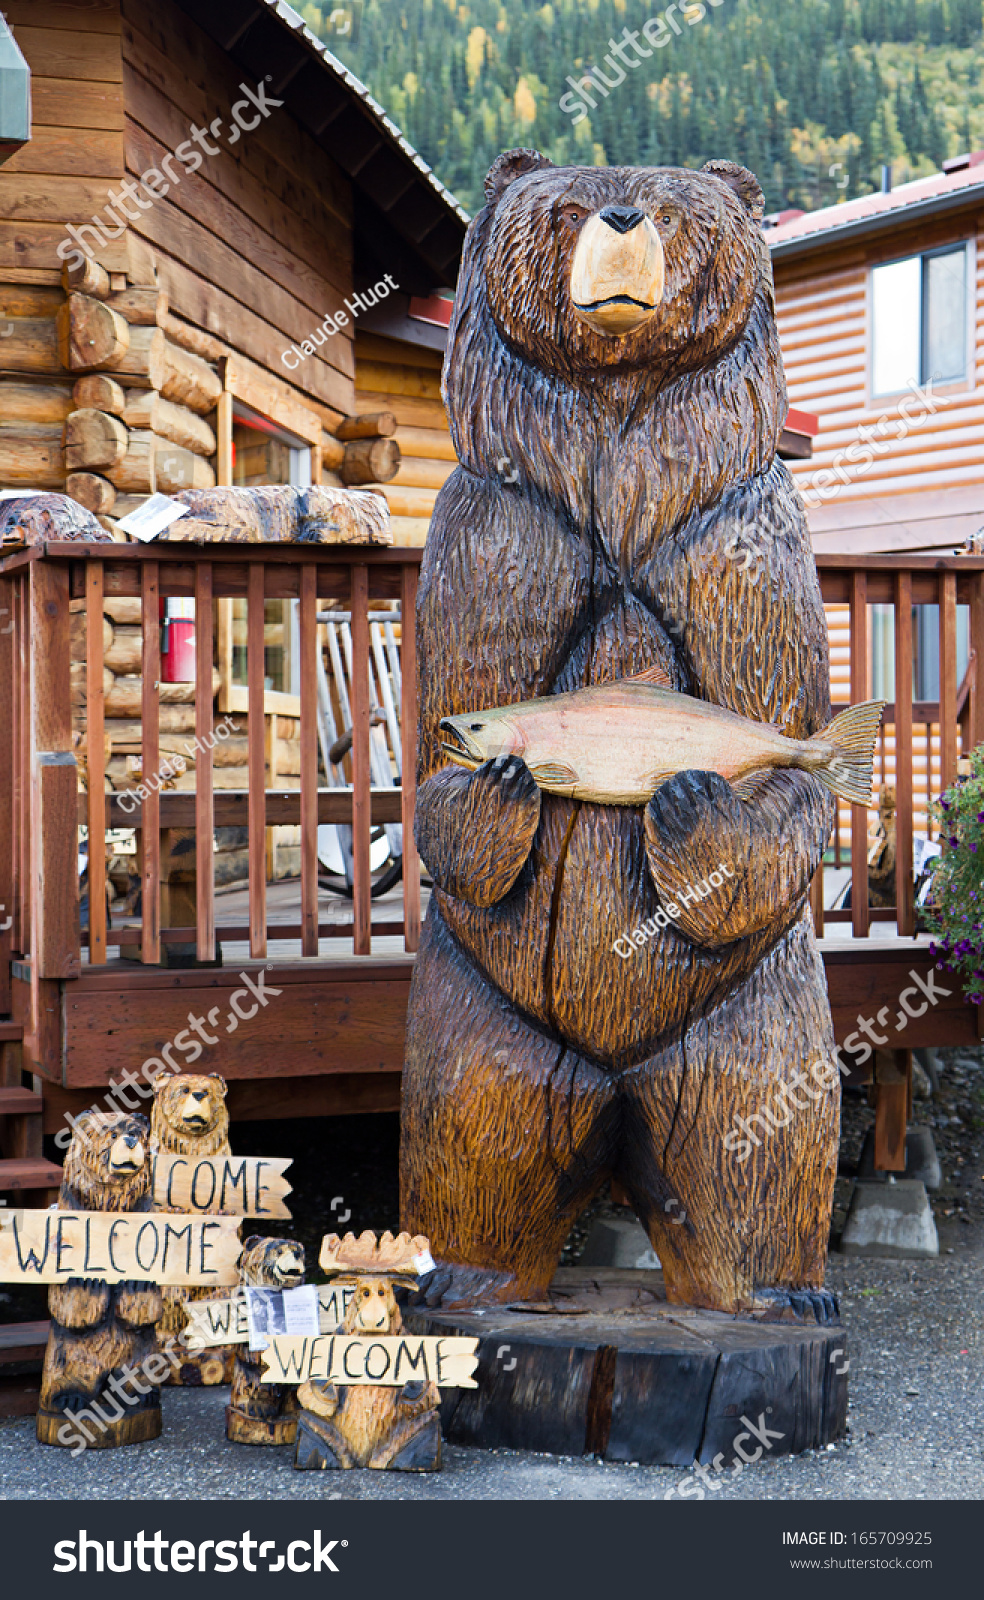 DENALI, ALASKA - SEPTEMBER 12, 2013: Sculptures of grizzly bears on sale at a wilderness lodge in the Denali National Park and Preserve which is a very popular tourist attraction.